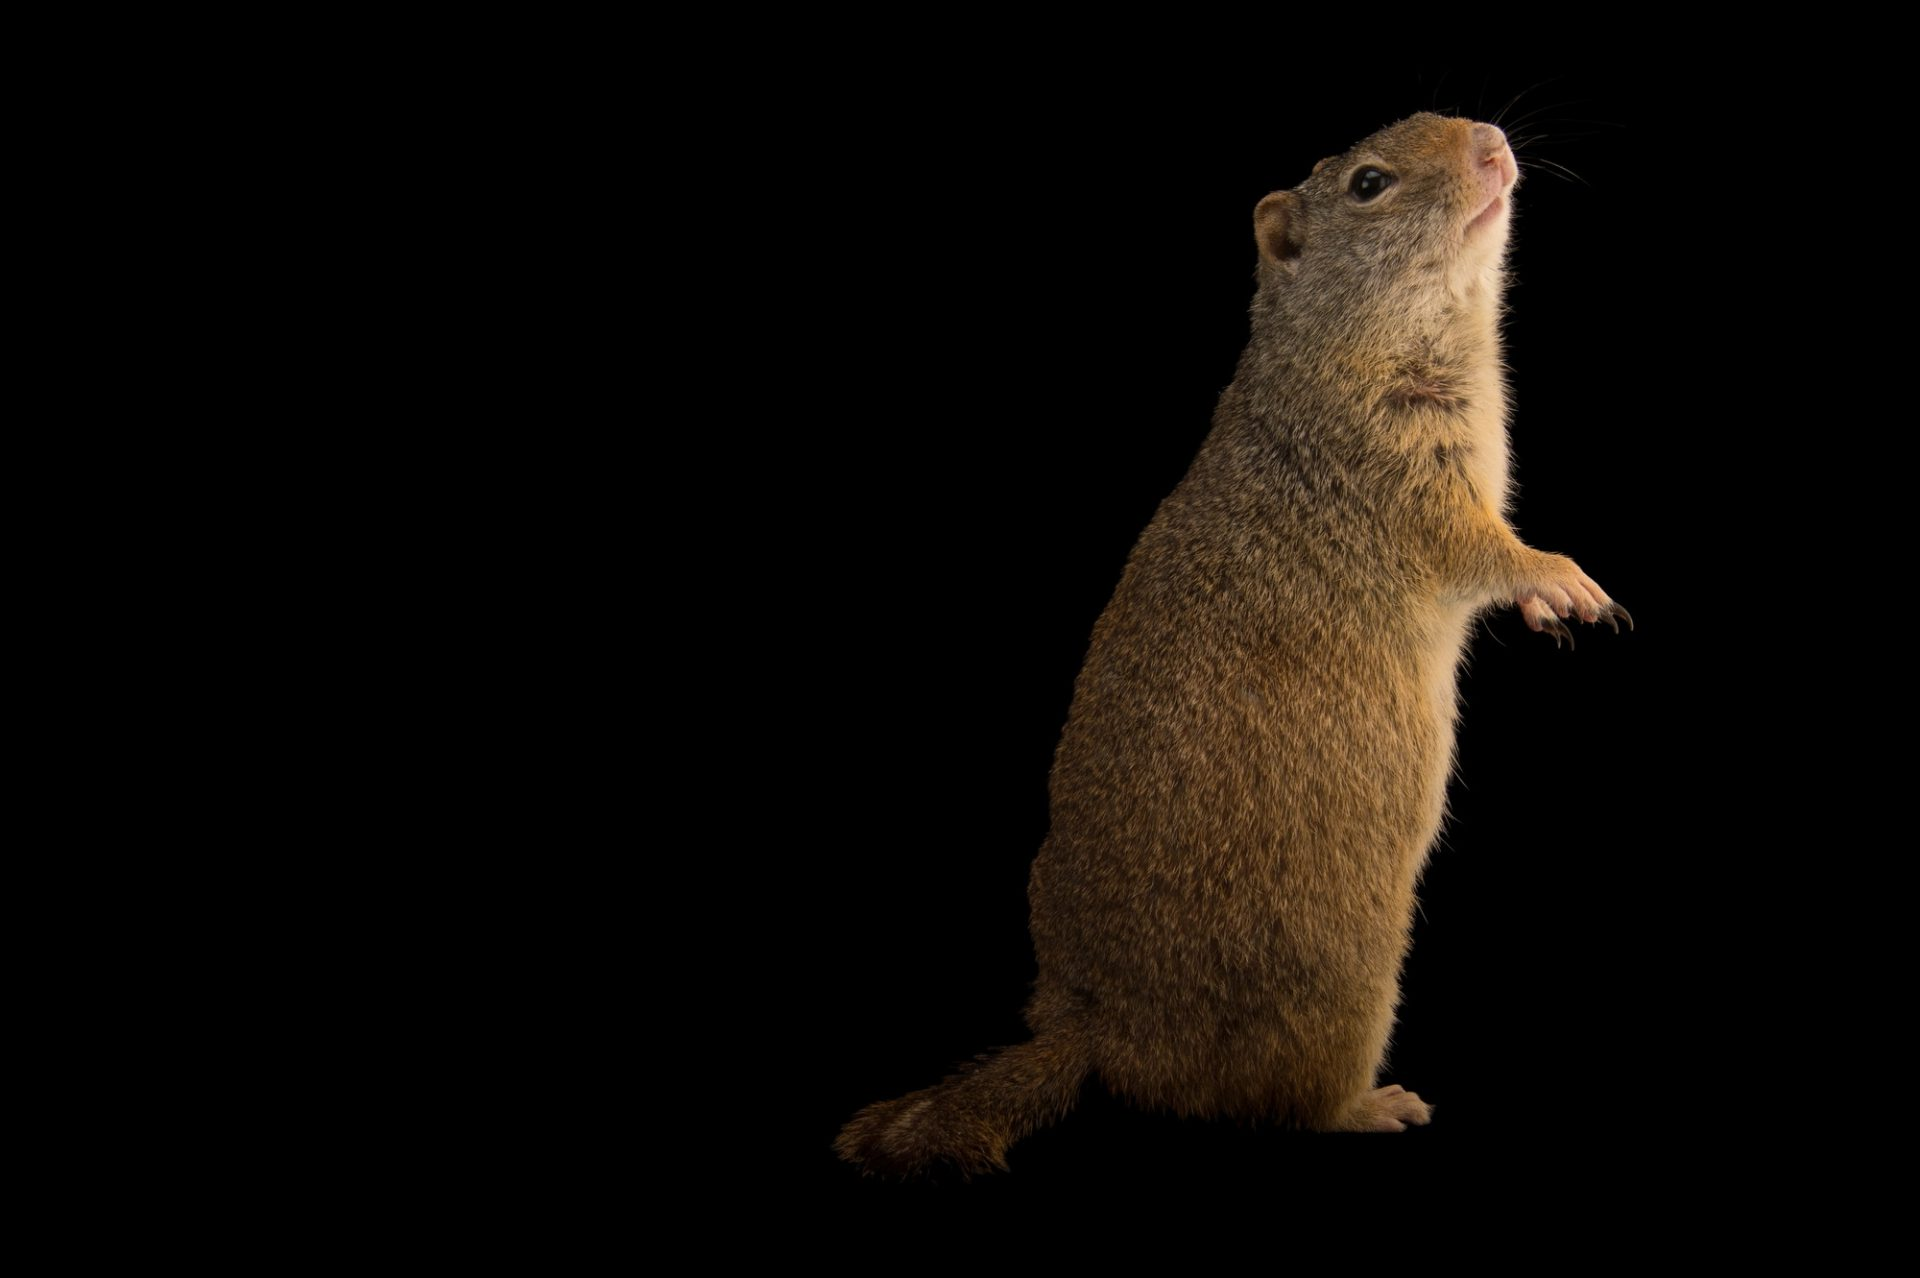 Picture of a Uinta ground squirrel (Urocitellus armatus) at the Wildlife Rehabilitation Center of Northern Utah.